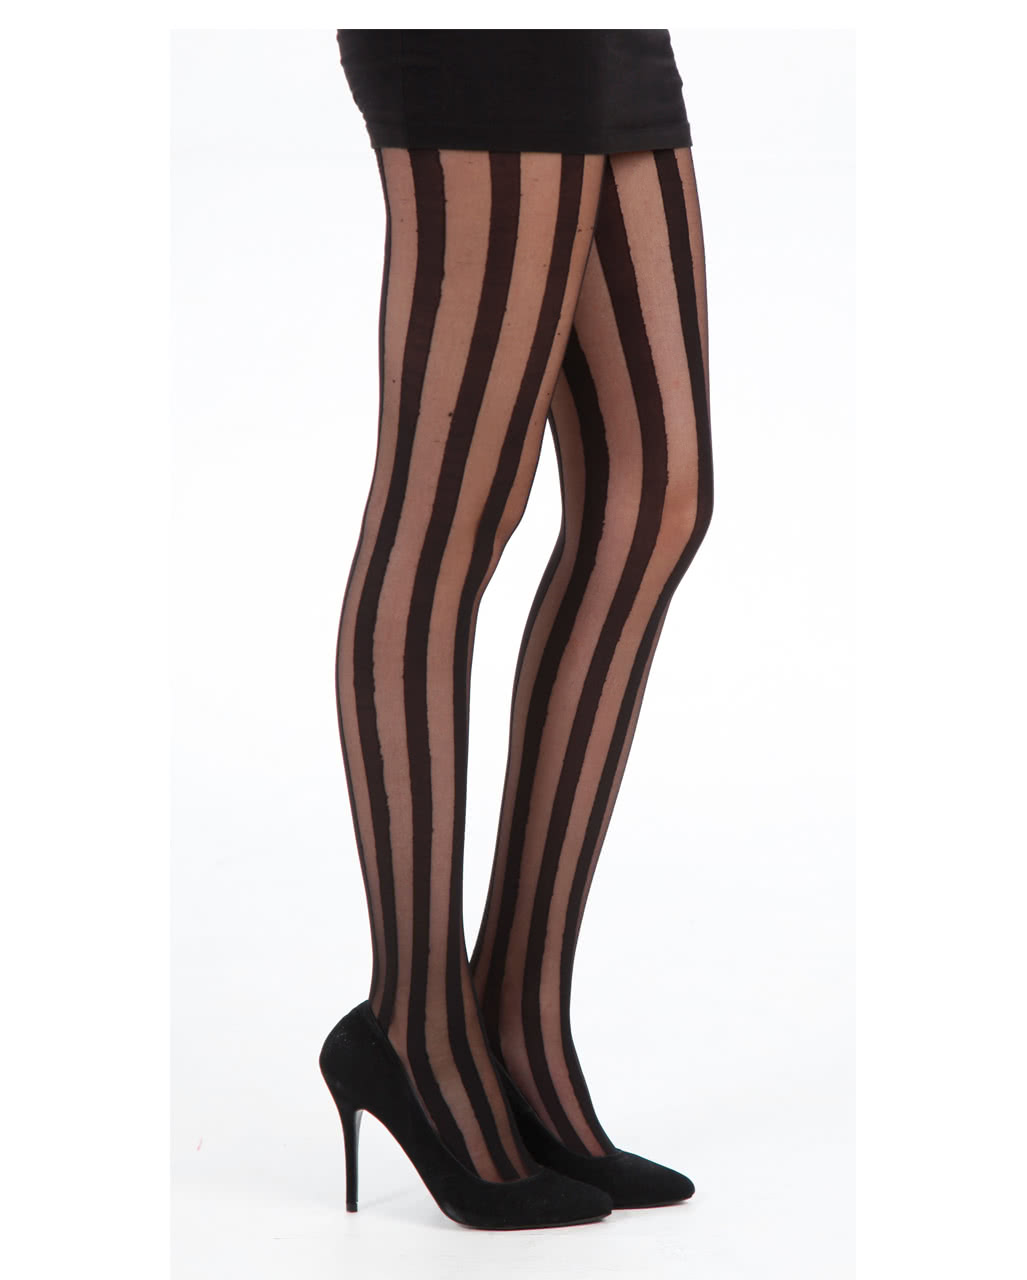 In Pantyhose With Stripes 105